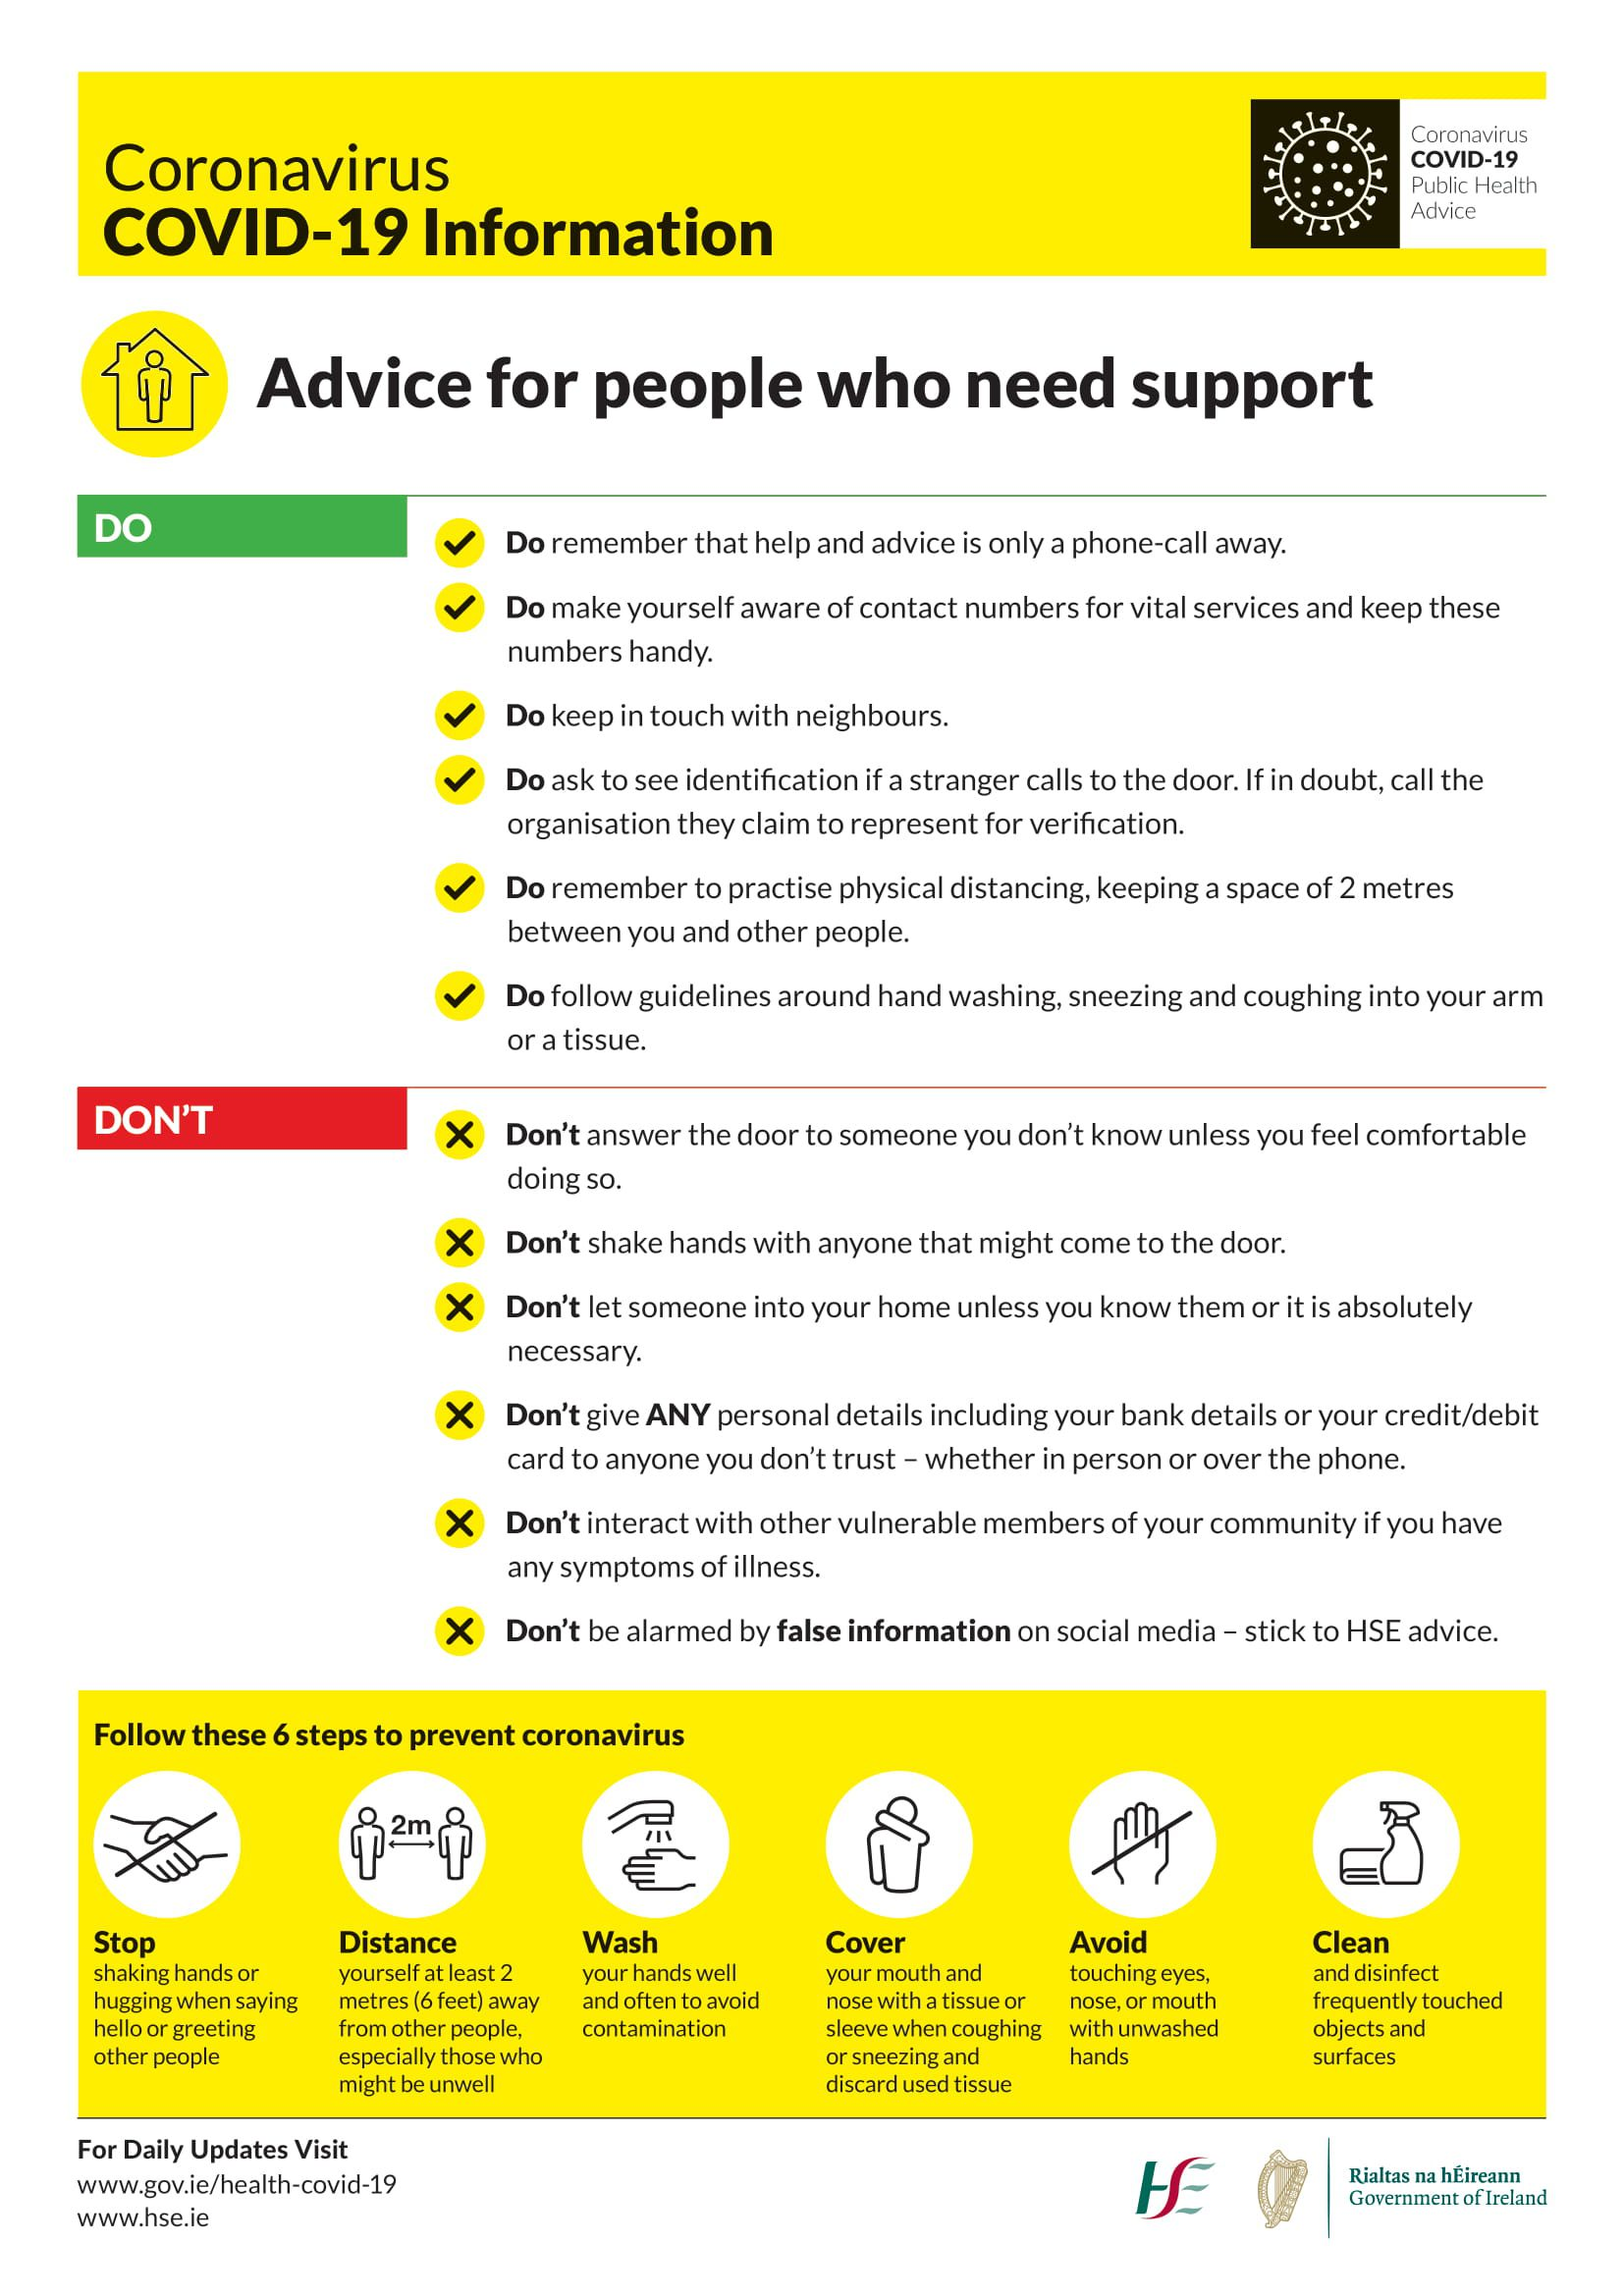 Advice for people who need support during COVID-19